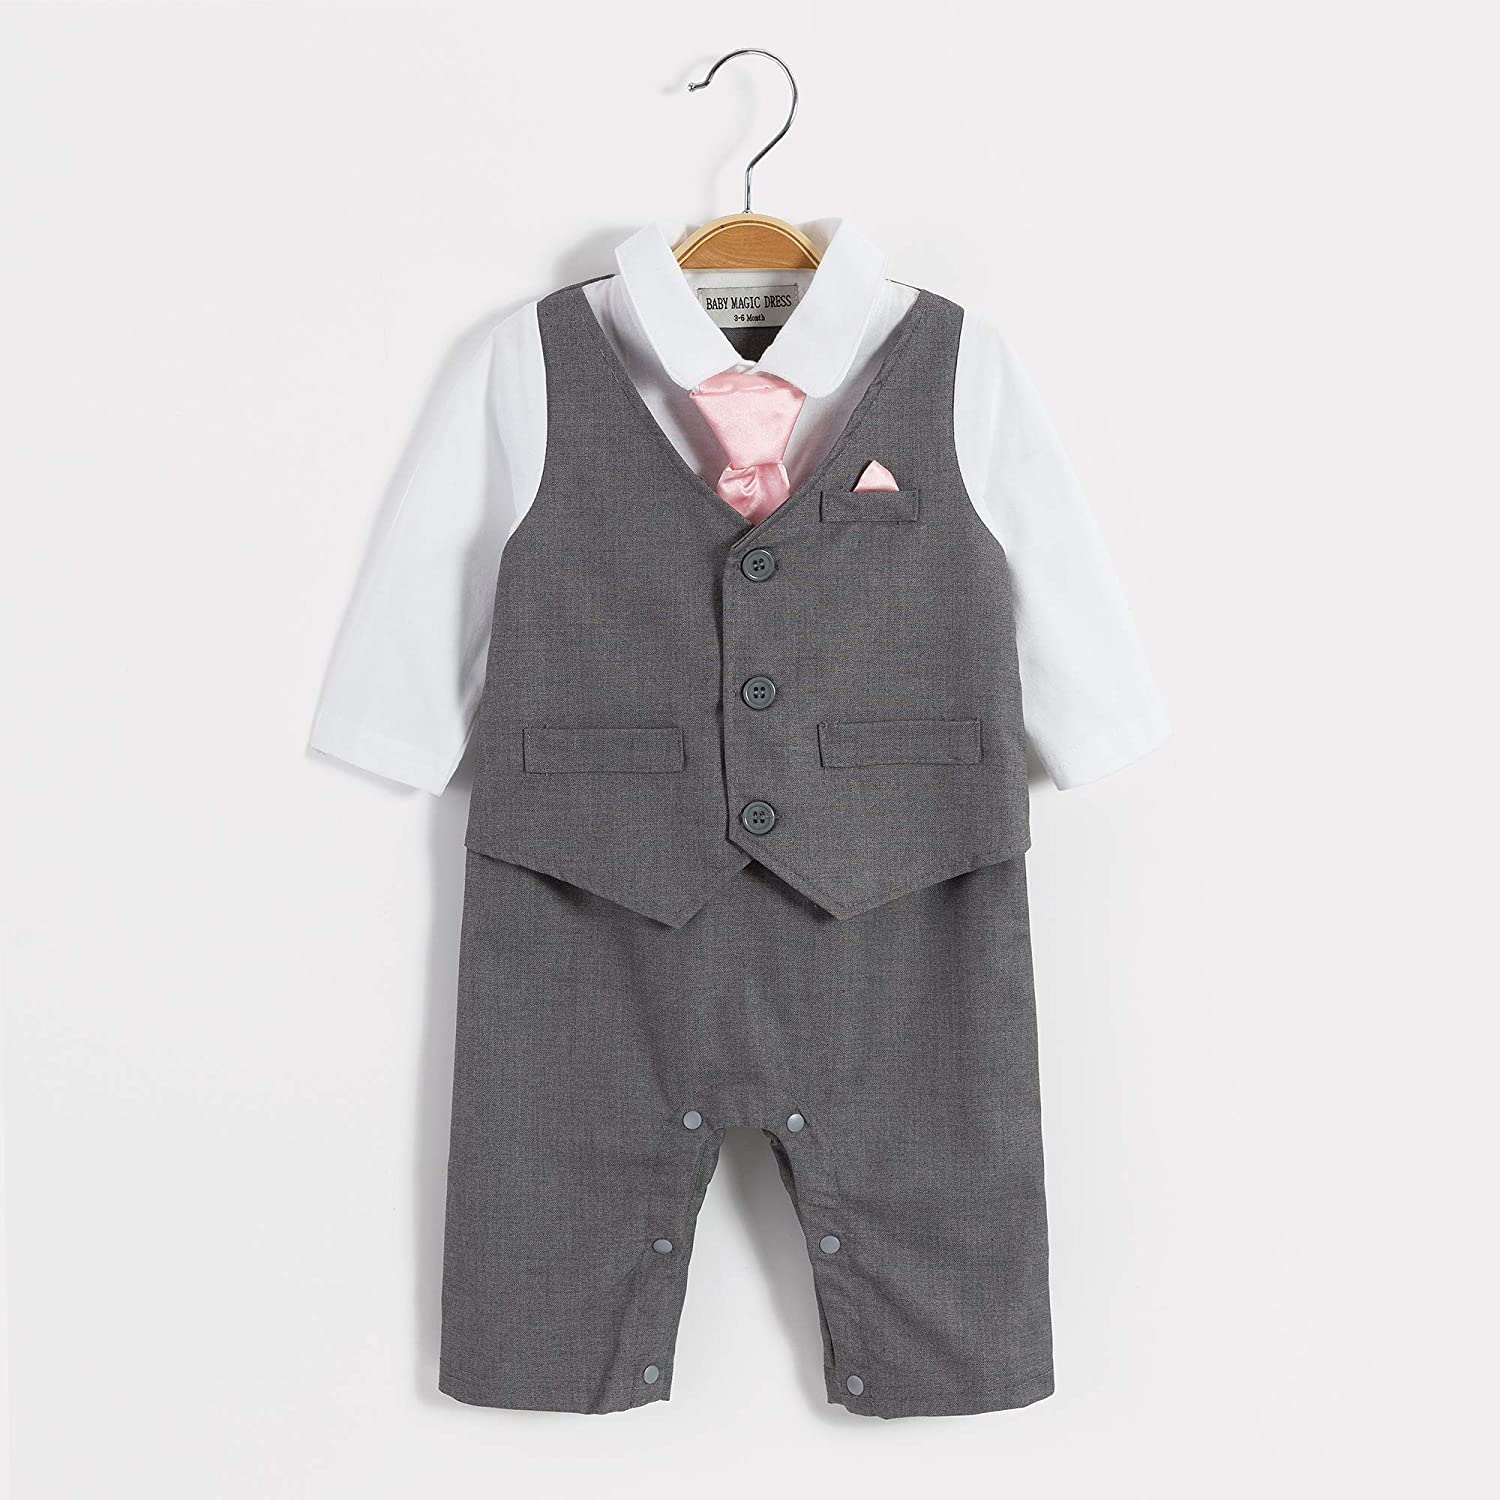 Baby Boy Wedding Tuxedo Waistcoat All in 1pc Design Outfit Suit